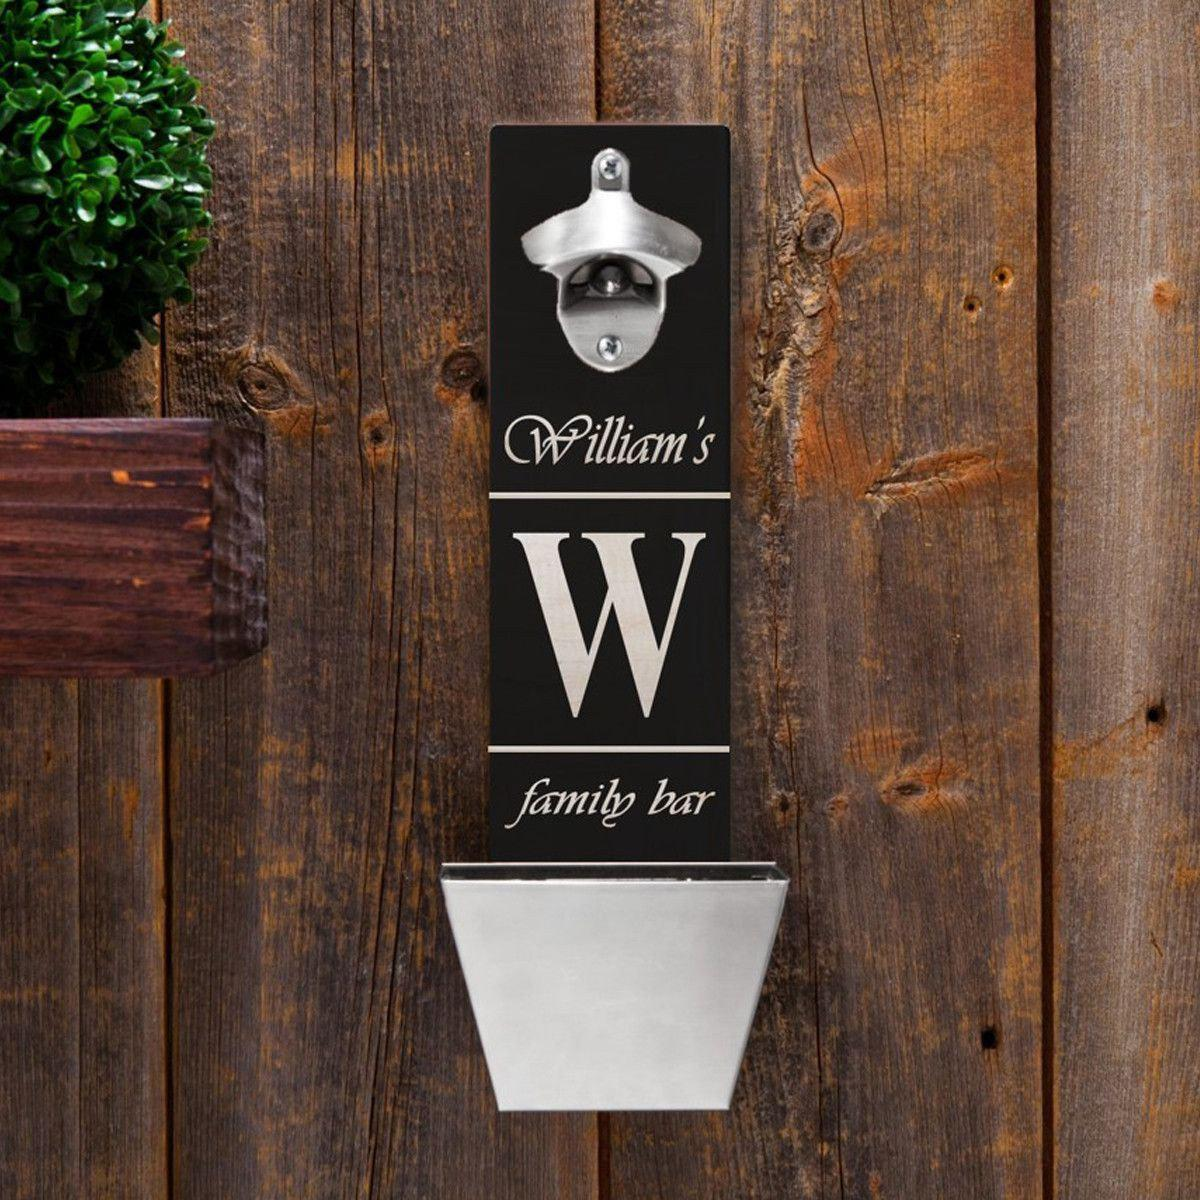 Personalized Wall Mounted Bottle Opener - Family Bar